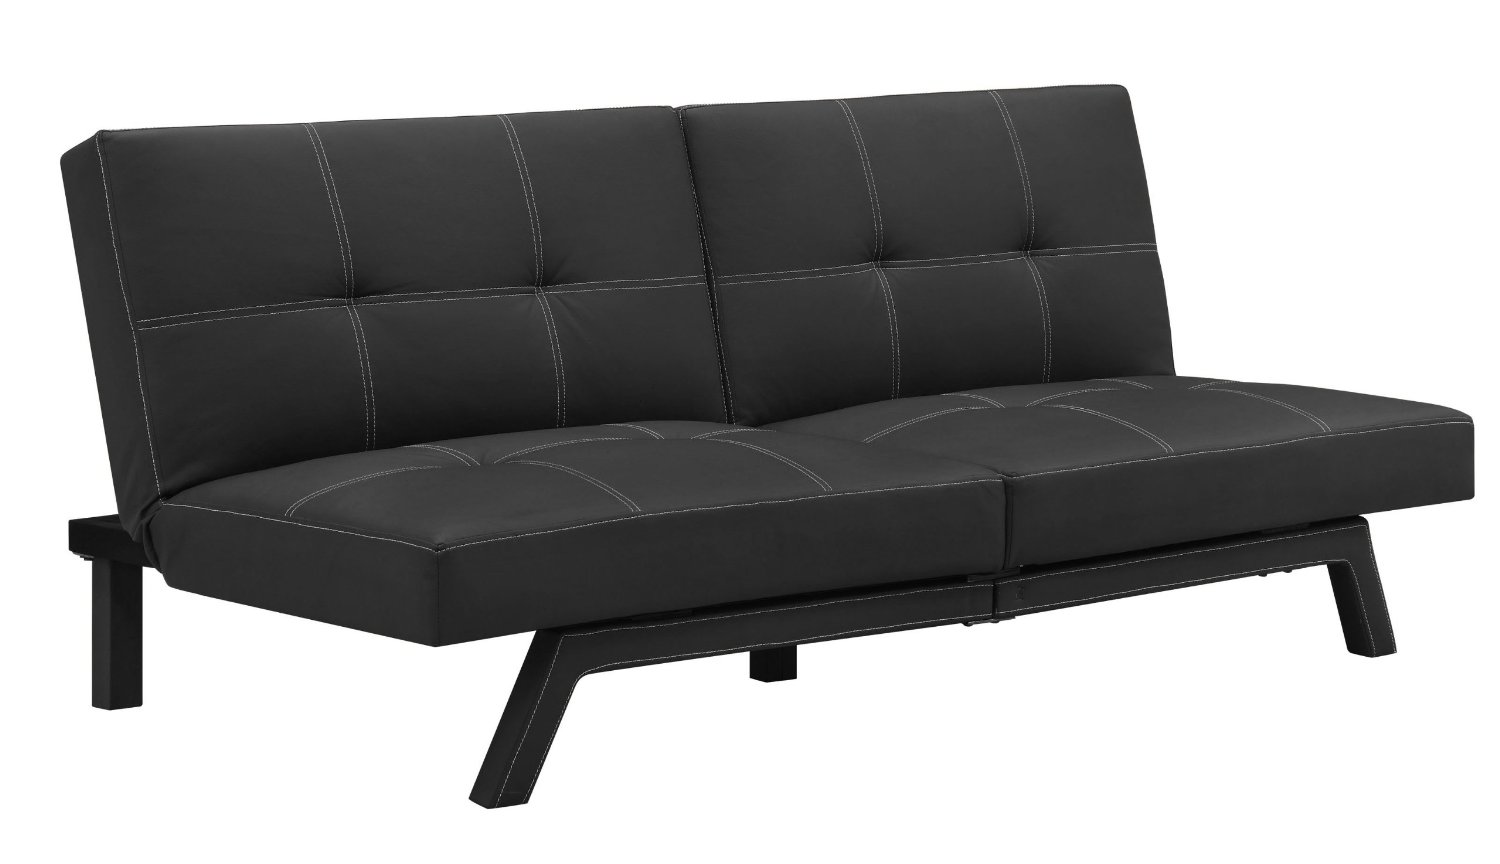 Buy Cheap Sofa: Cheap Modern Sofa